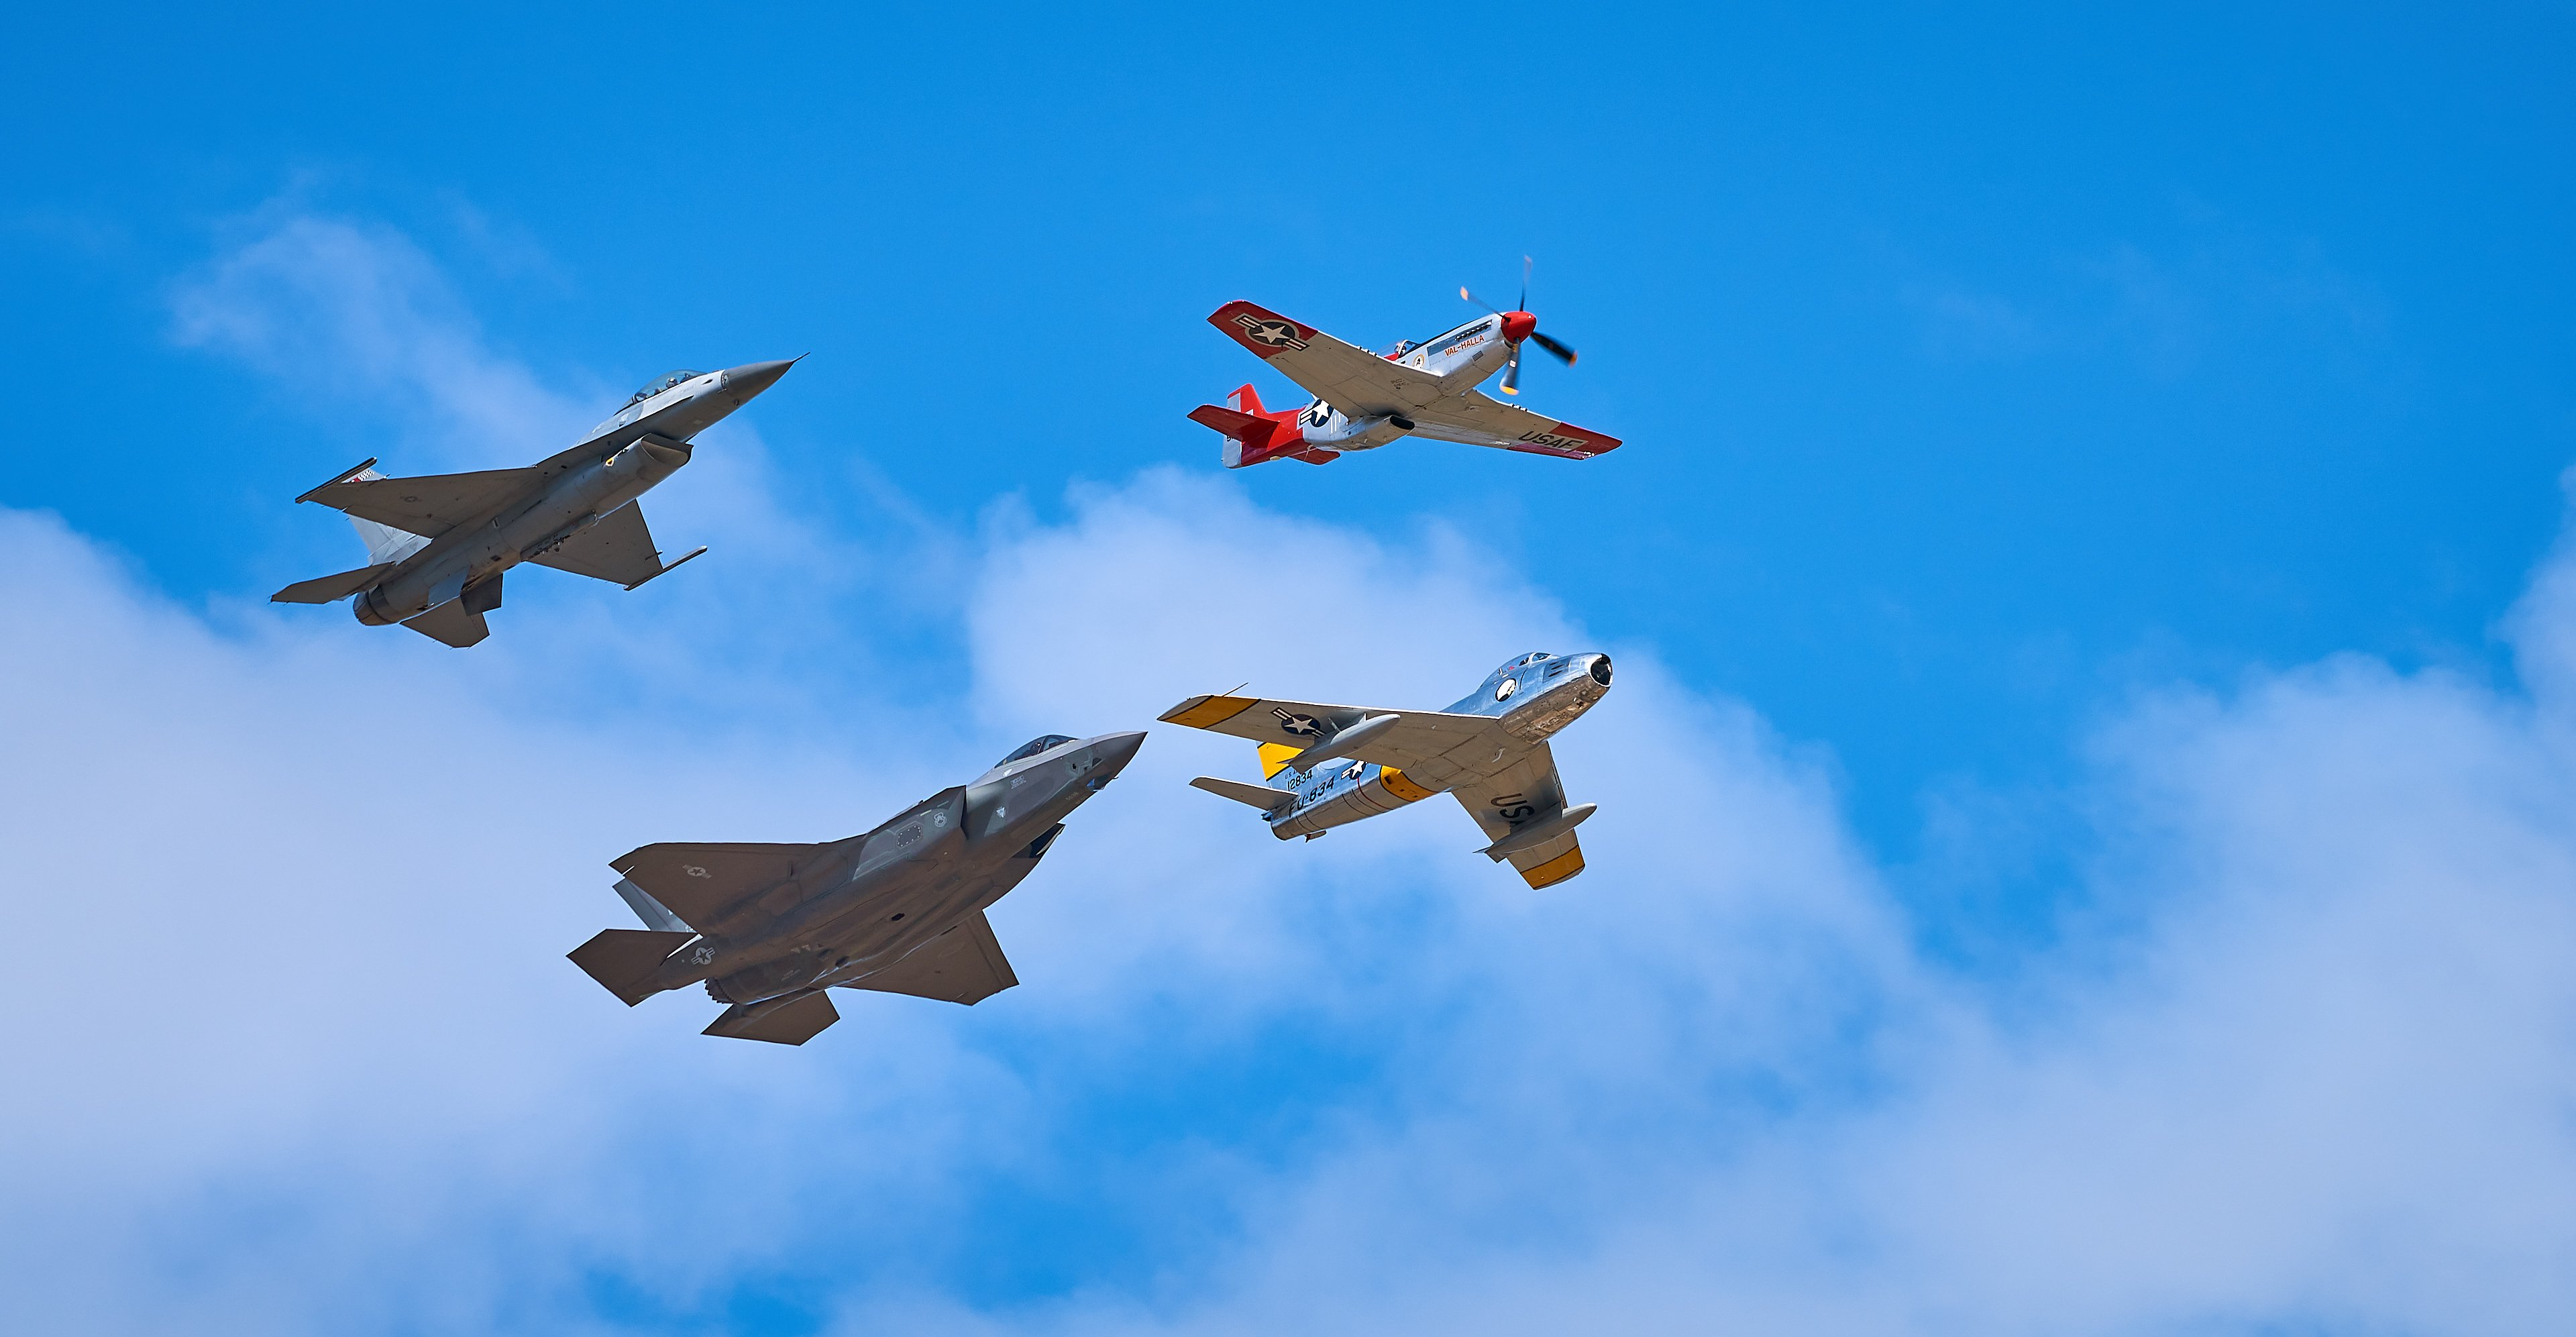 Abbotsford Airshow : 2017-08-13 : Heritage Flight with F35